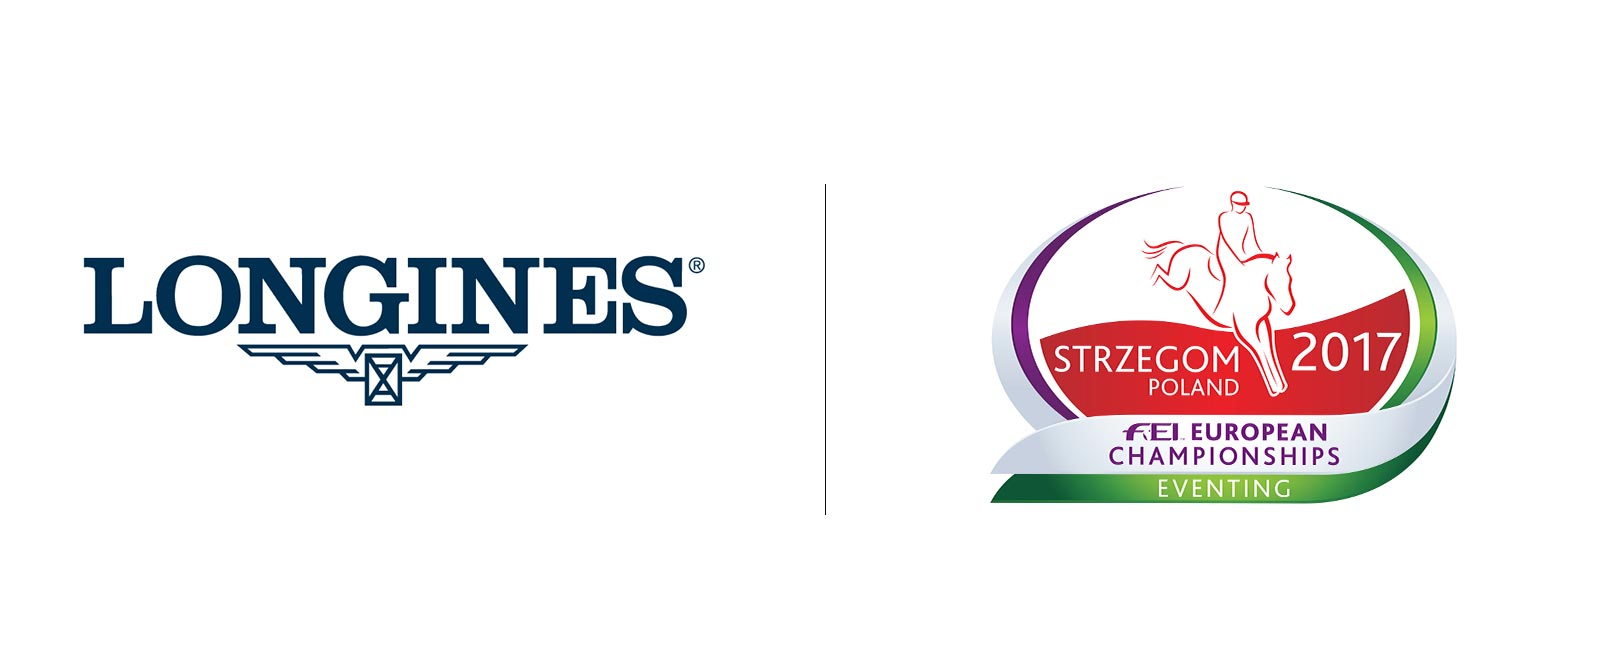 New partnership; Longines; eventing; Poland